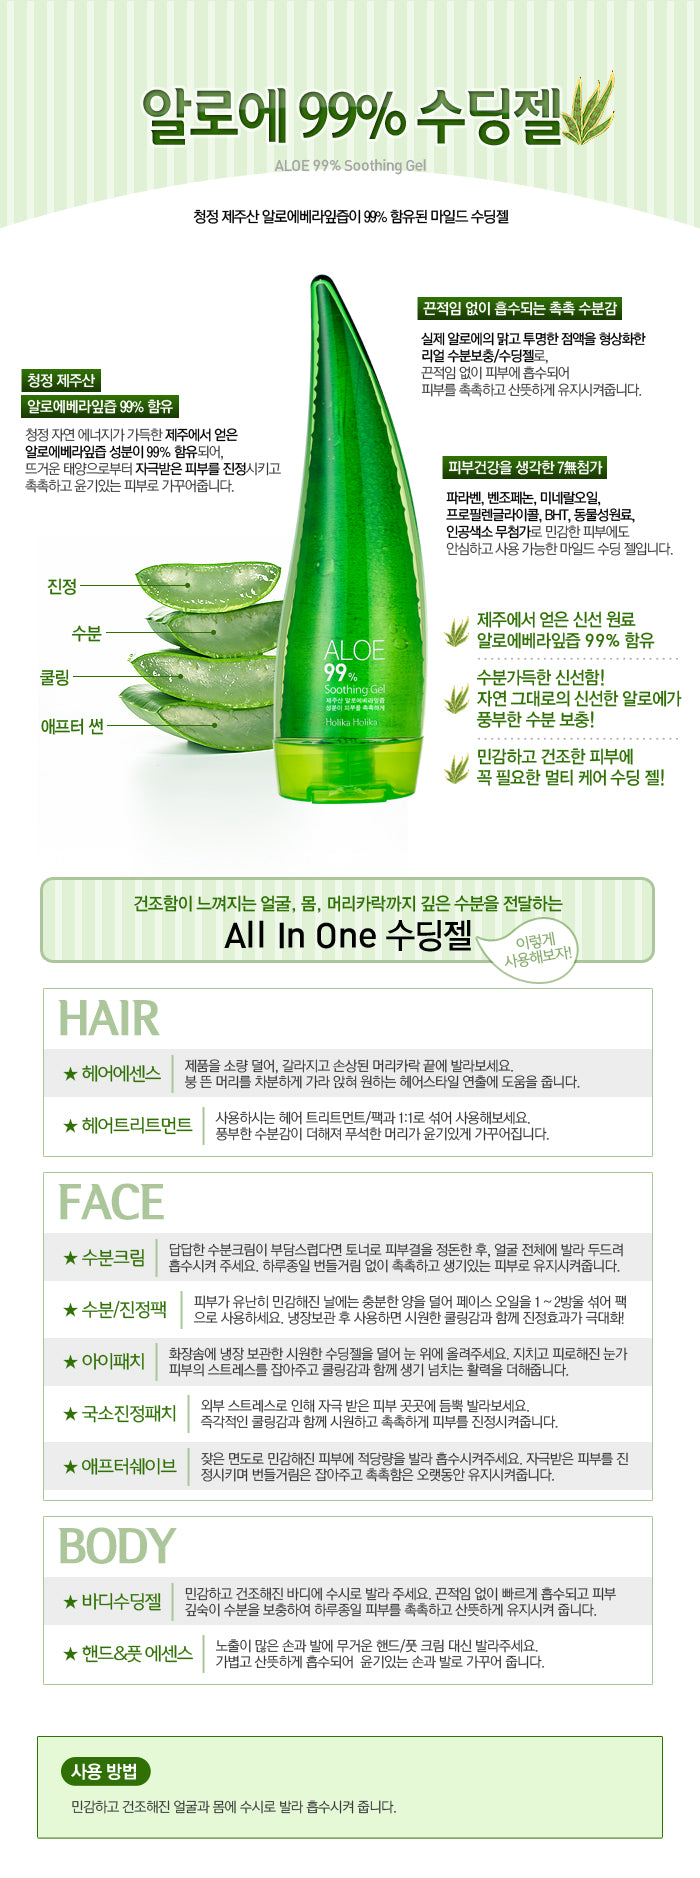 Holika Holika 99% Aloe Soothing Gel - oo35mm